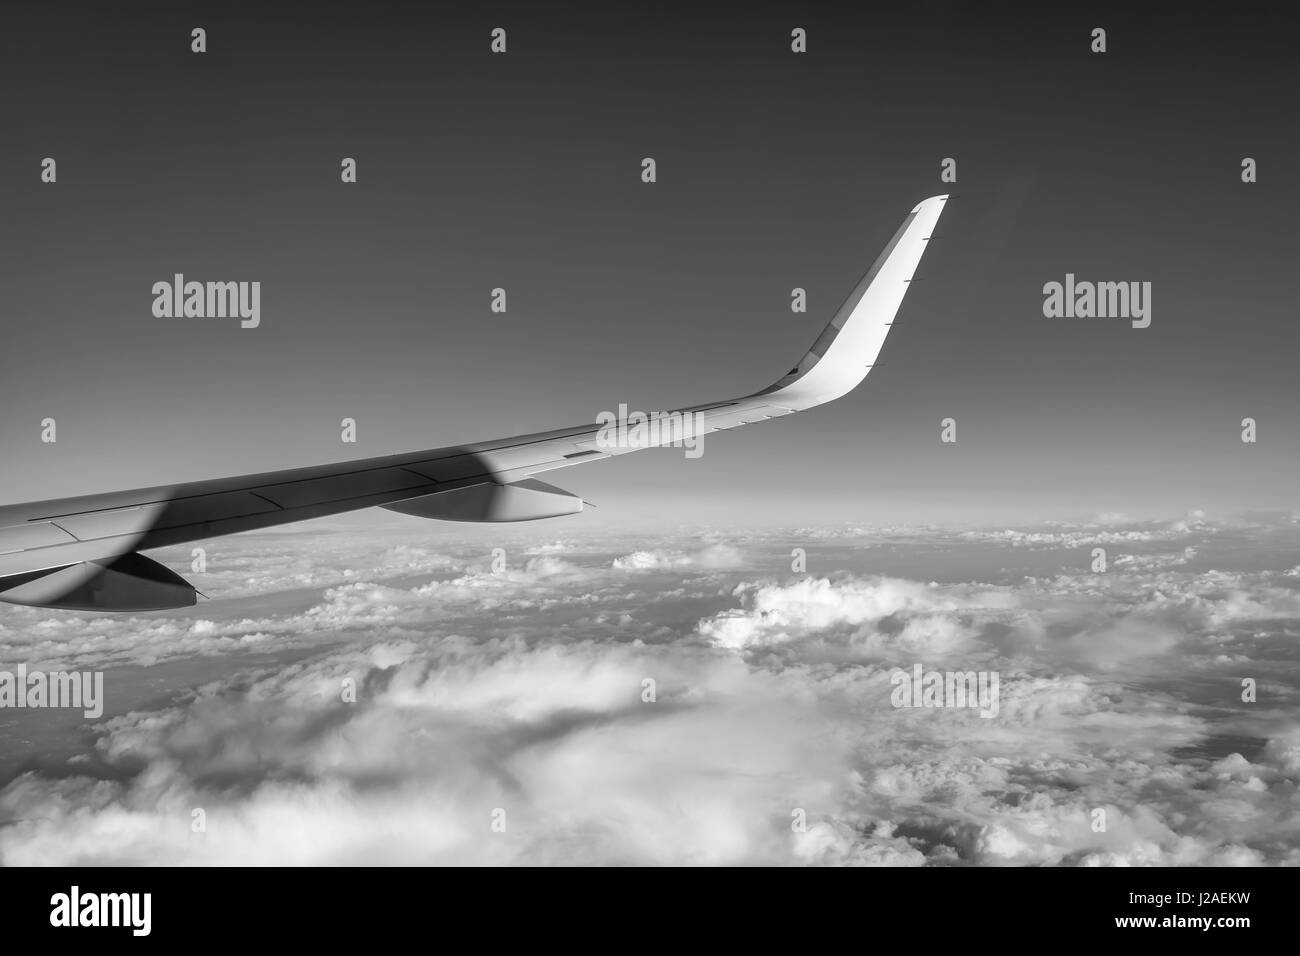 Airplane flying high above the clouds (black and white photography) - Stock Image